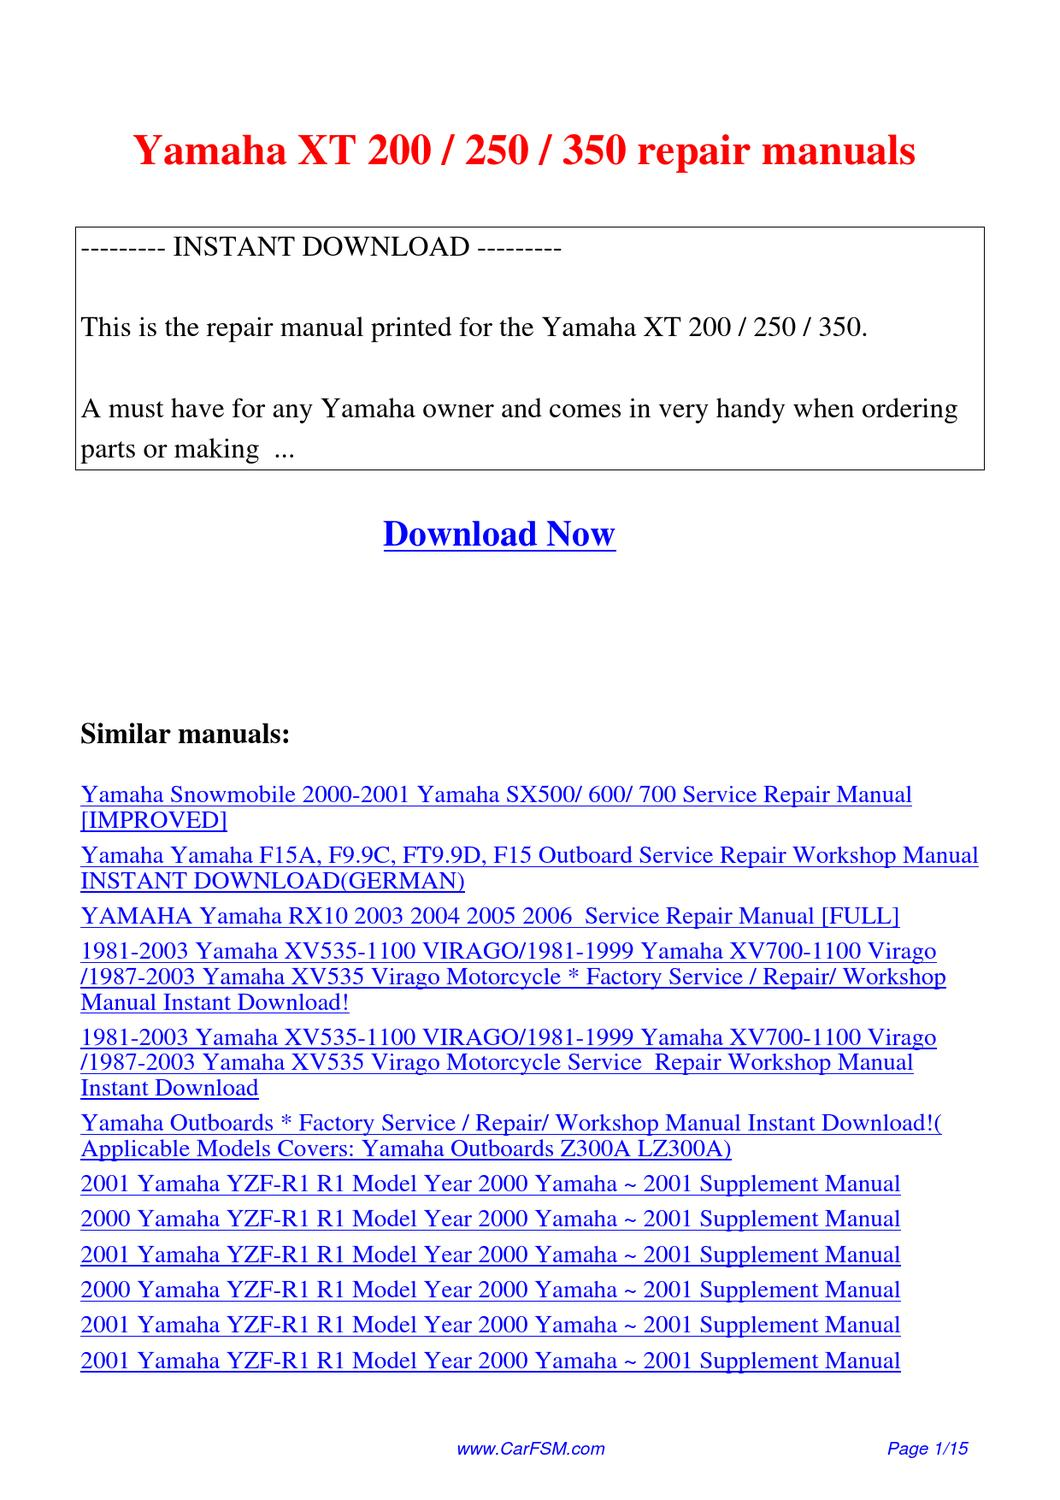 1988 Yamaha Pro50lg Ebook Diagram Of All Years Ef2500 Power Equipment Generator Array Xt 200 250 350 Repair Manuals By Guang Dong Issuu Rh